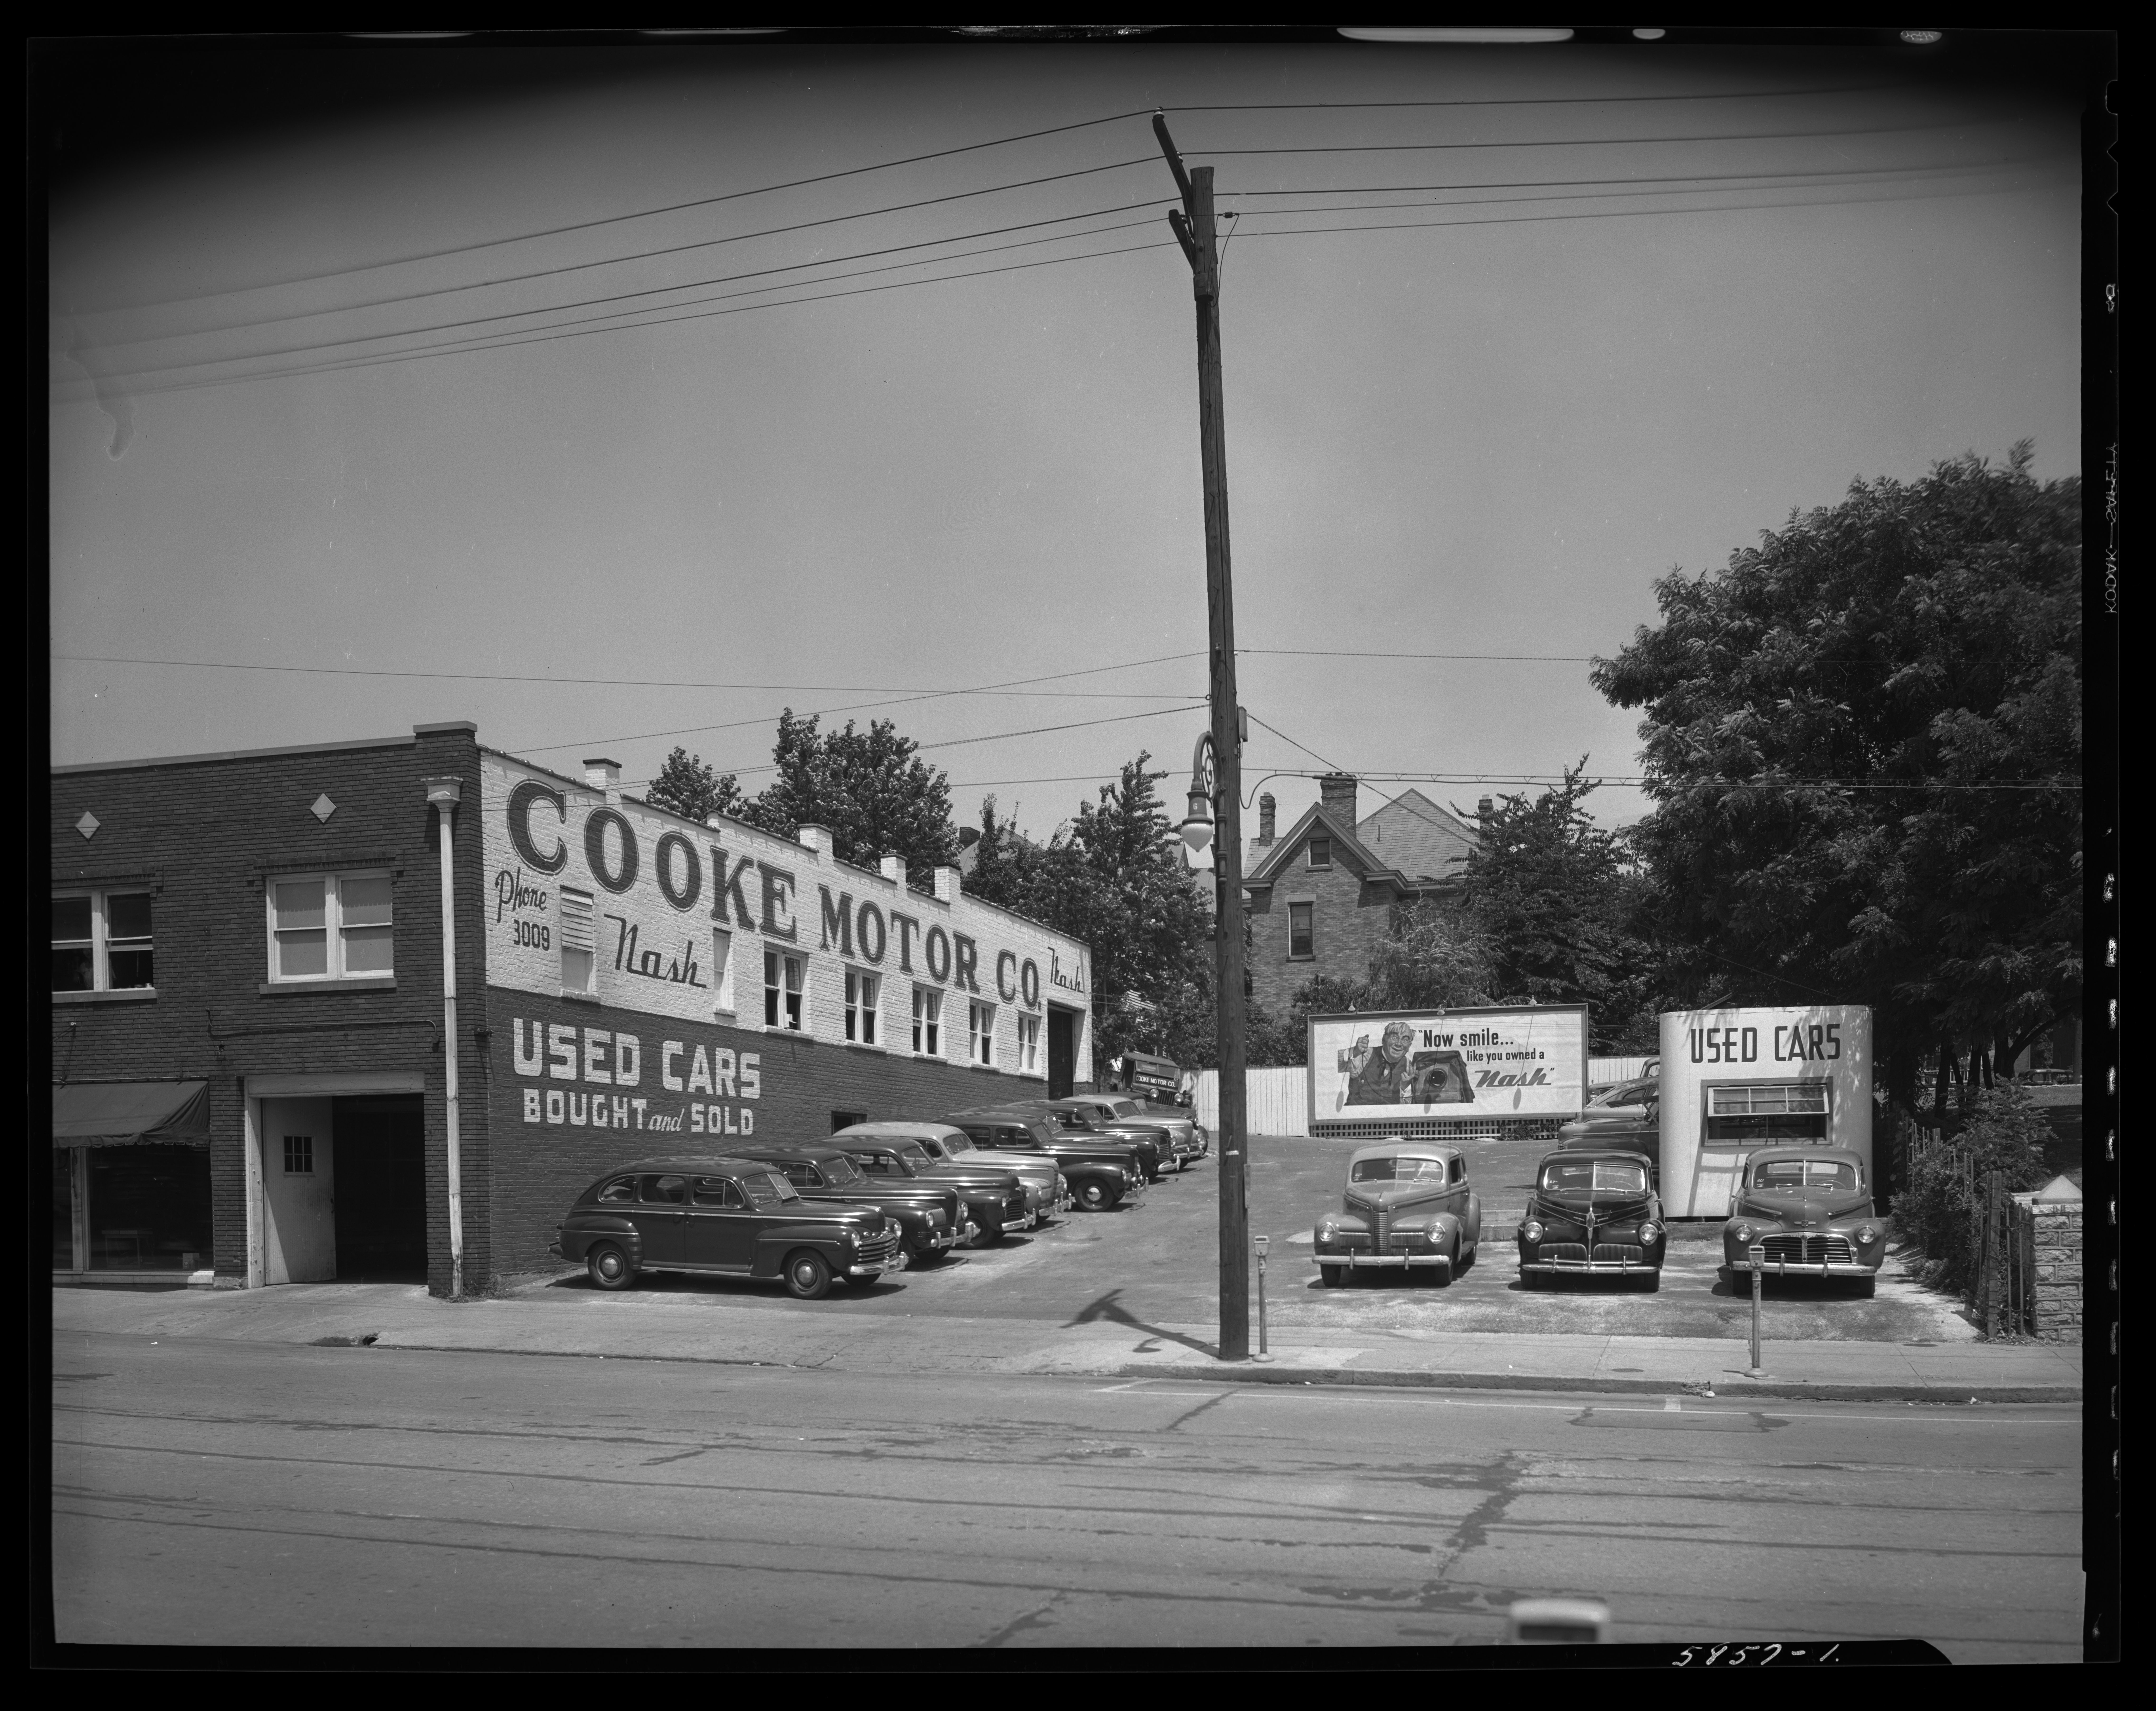 """L.R. Cooke Chevrolet Company, 255 East Main; used car lot; side of building reading """"Cooke Motor Company"""", 1947"""